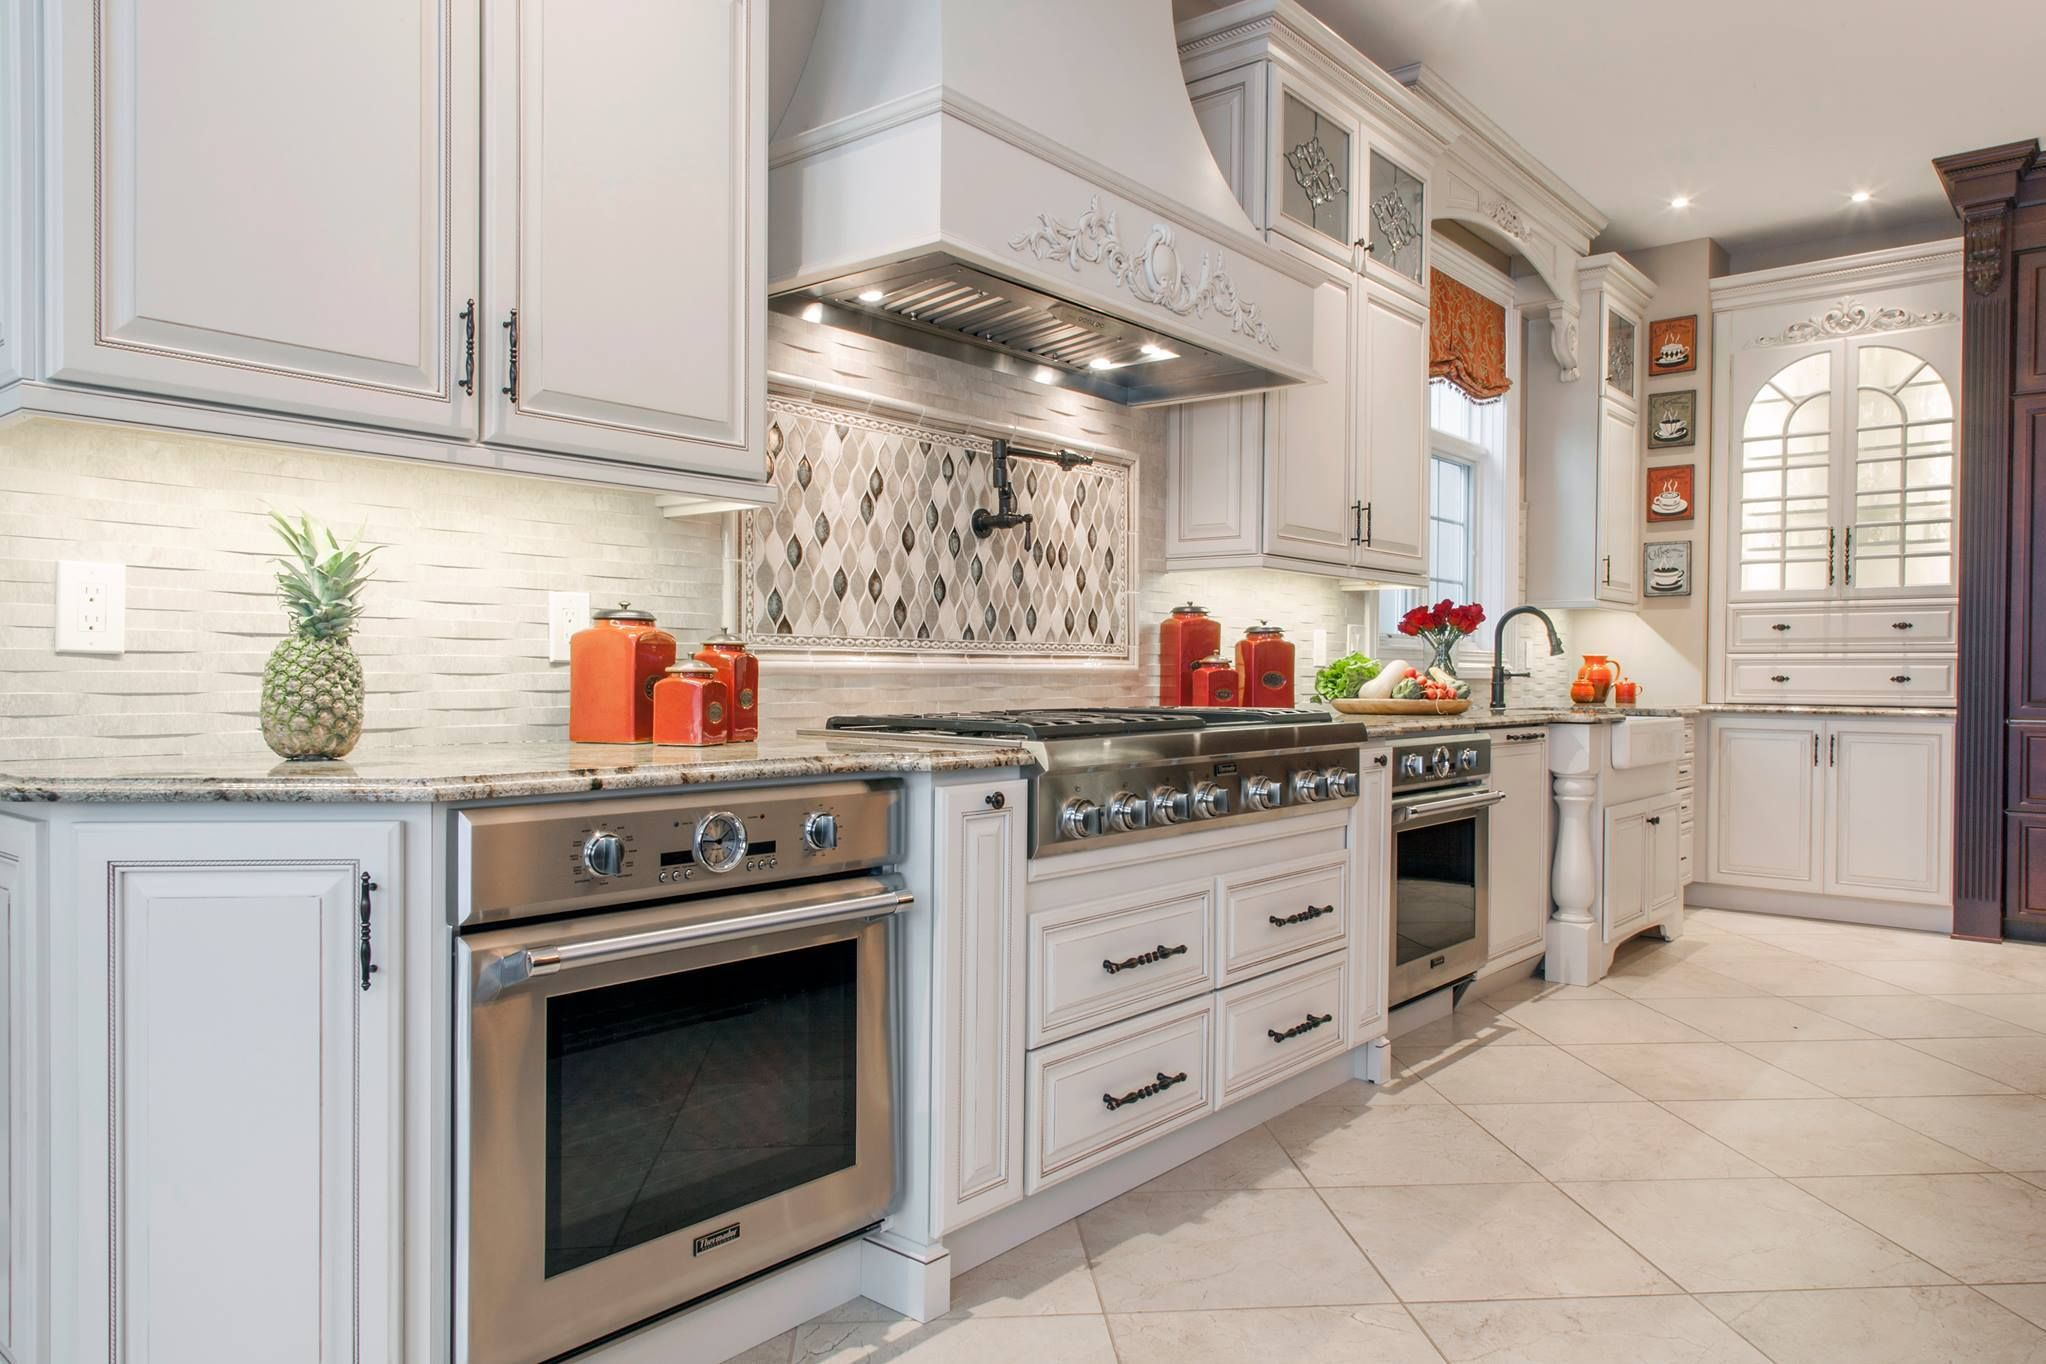 kitchen design trends to watch in 2017 small space kitchen new kitchen designs kitchen on kitchen organization small space id=85965